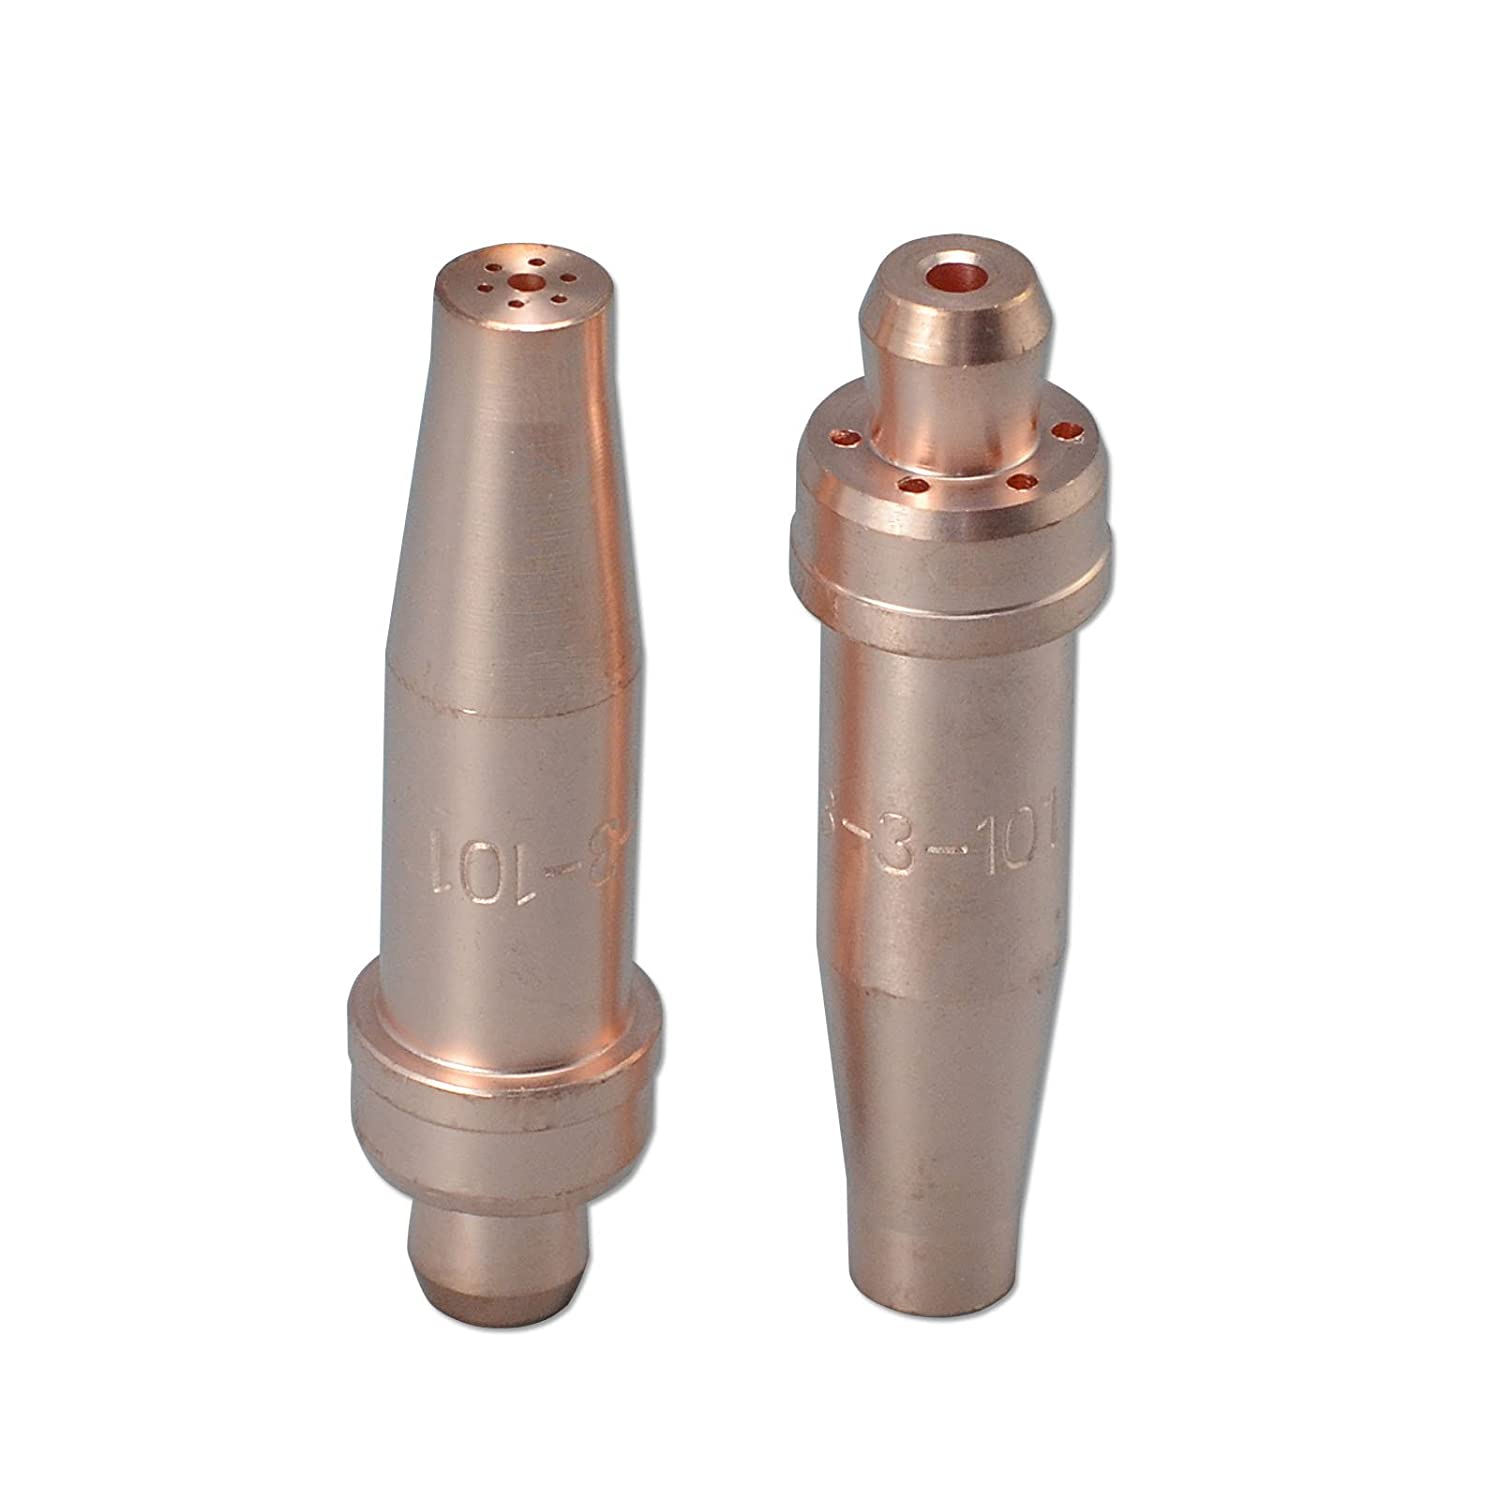 2pcs 3-101 Size #3 Acetylene Cutting Tip Fit For Victor Oxyfuel Torch RIVERWELDstore